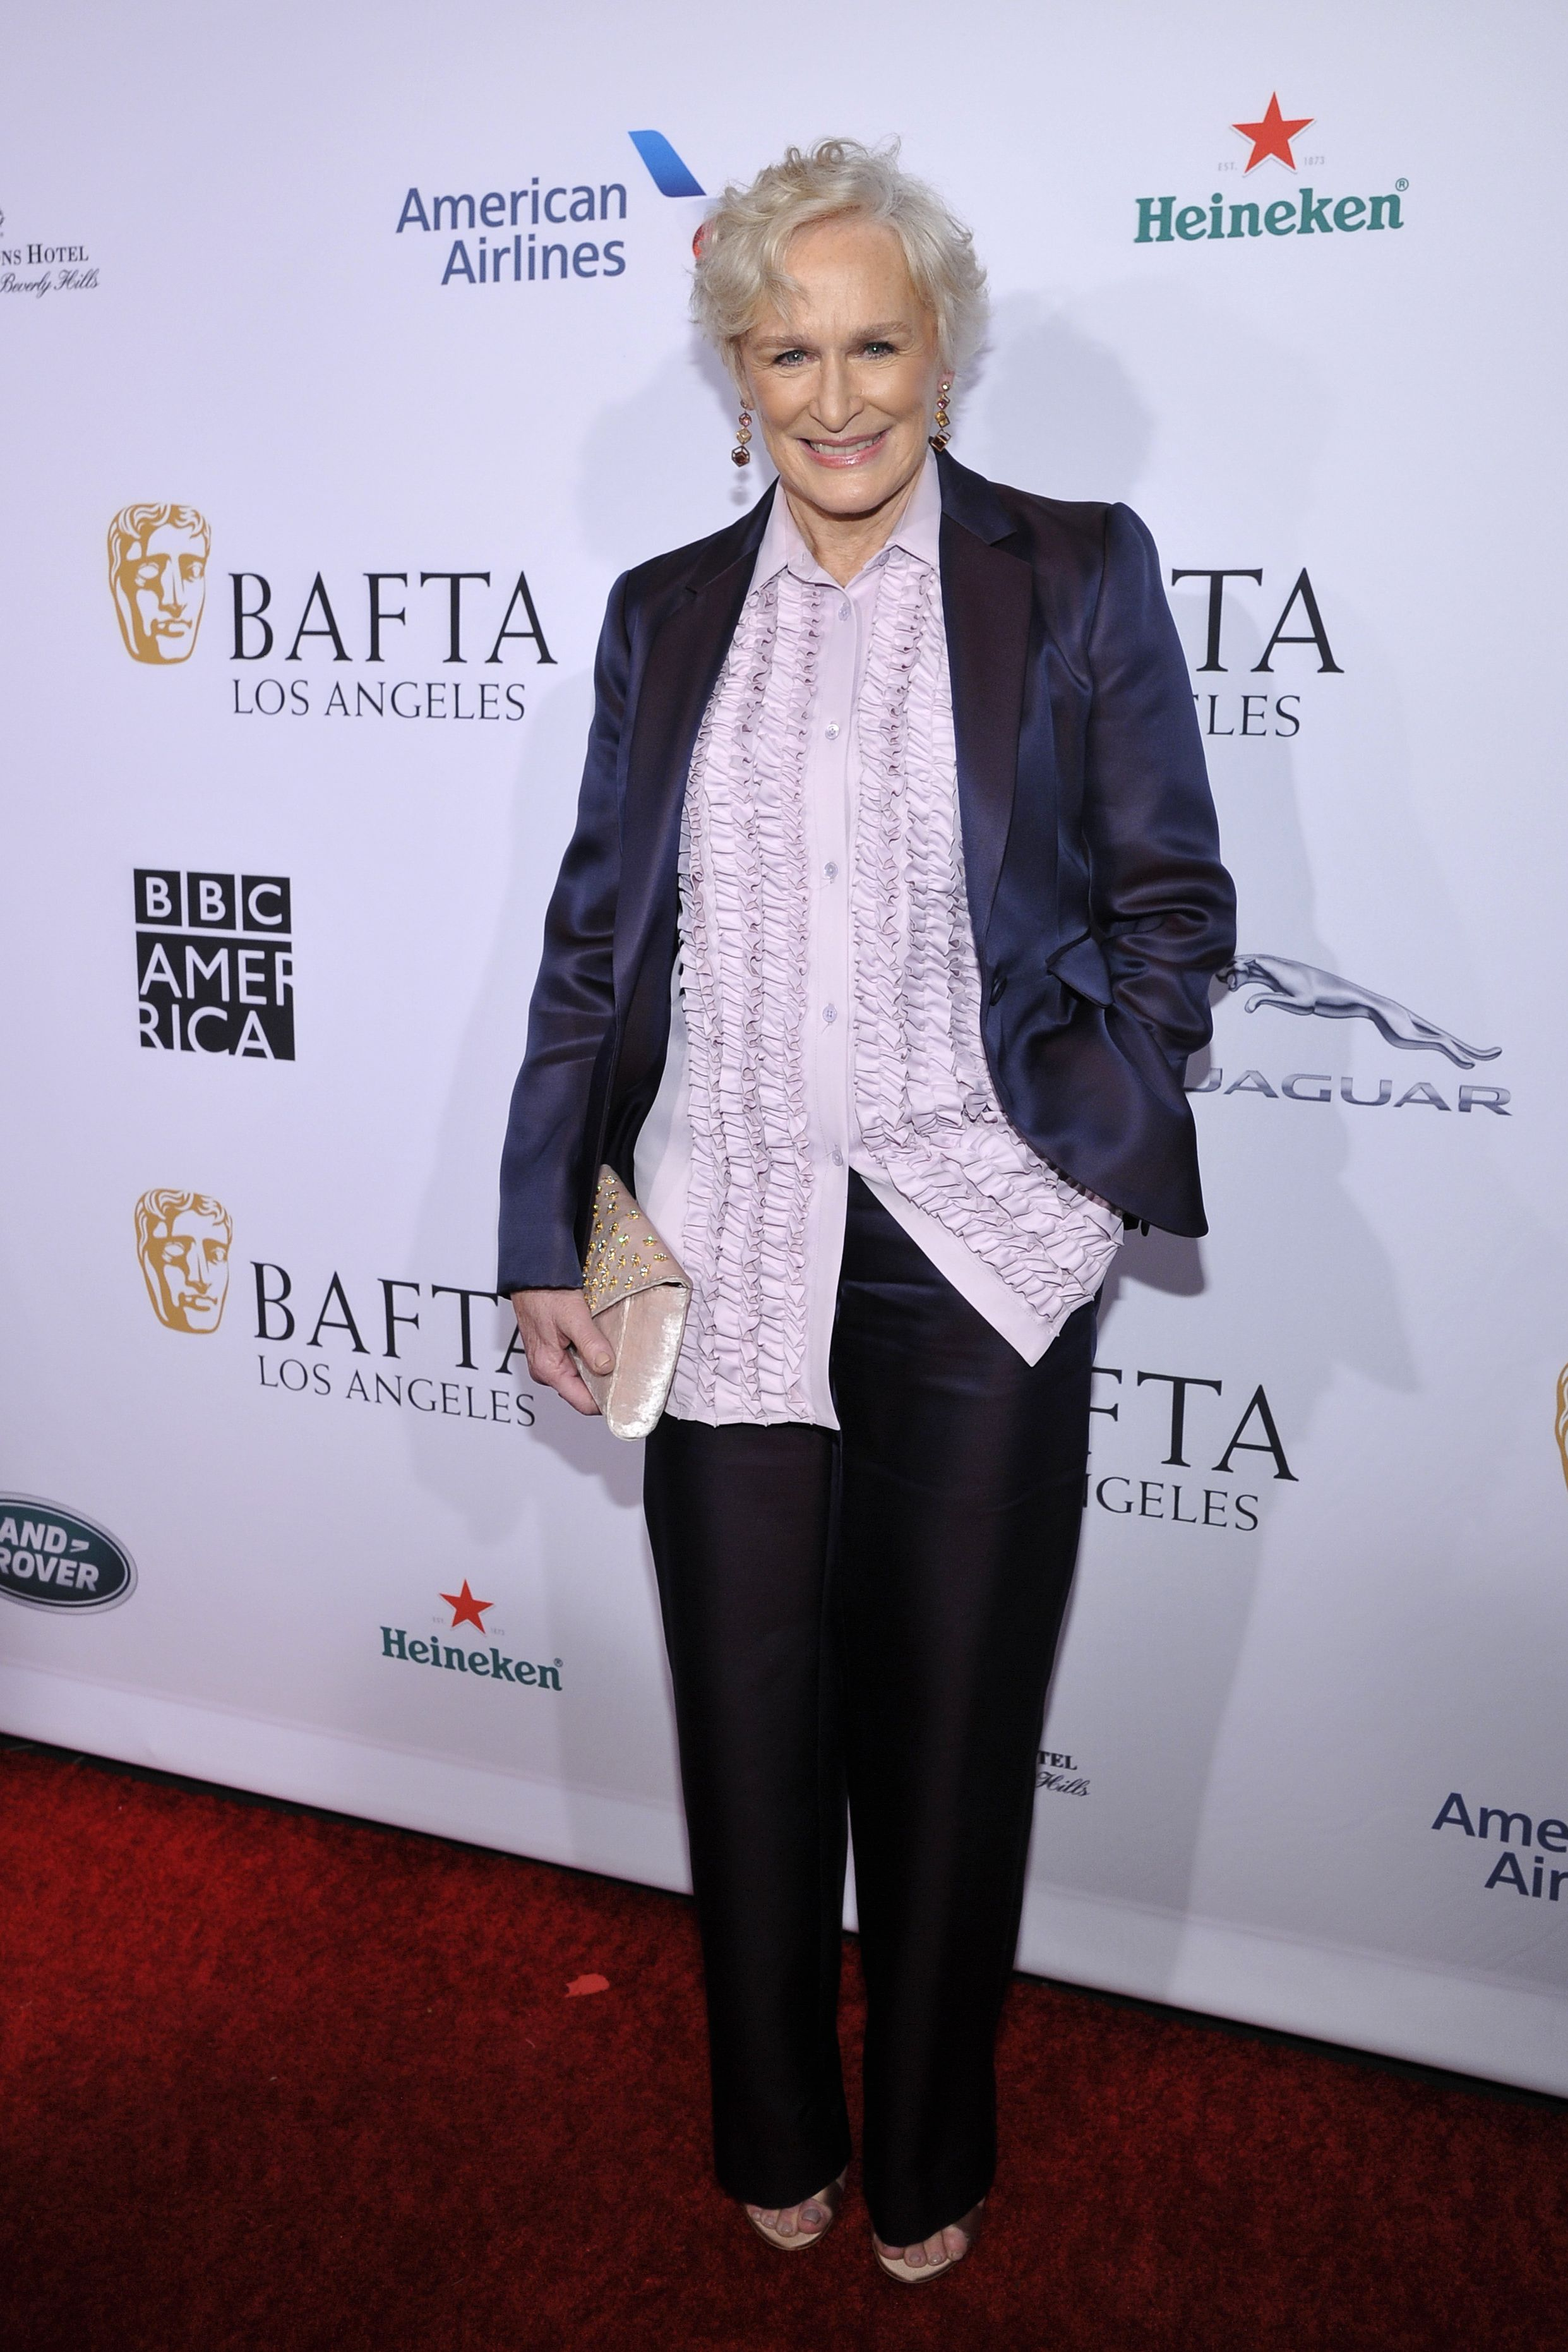 The Wife star paired a lavender ruffled blouse with a deep violet suit by Sies Marjan for the BAFTA Los Angeles Tea Party. The actress complimented her look with a gold clutch and colorful drop earrings.